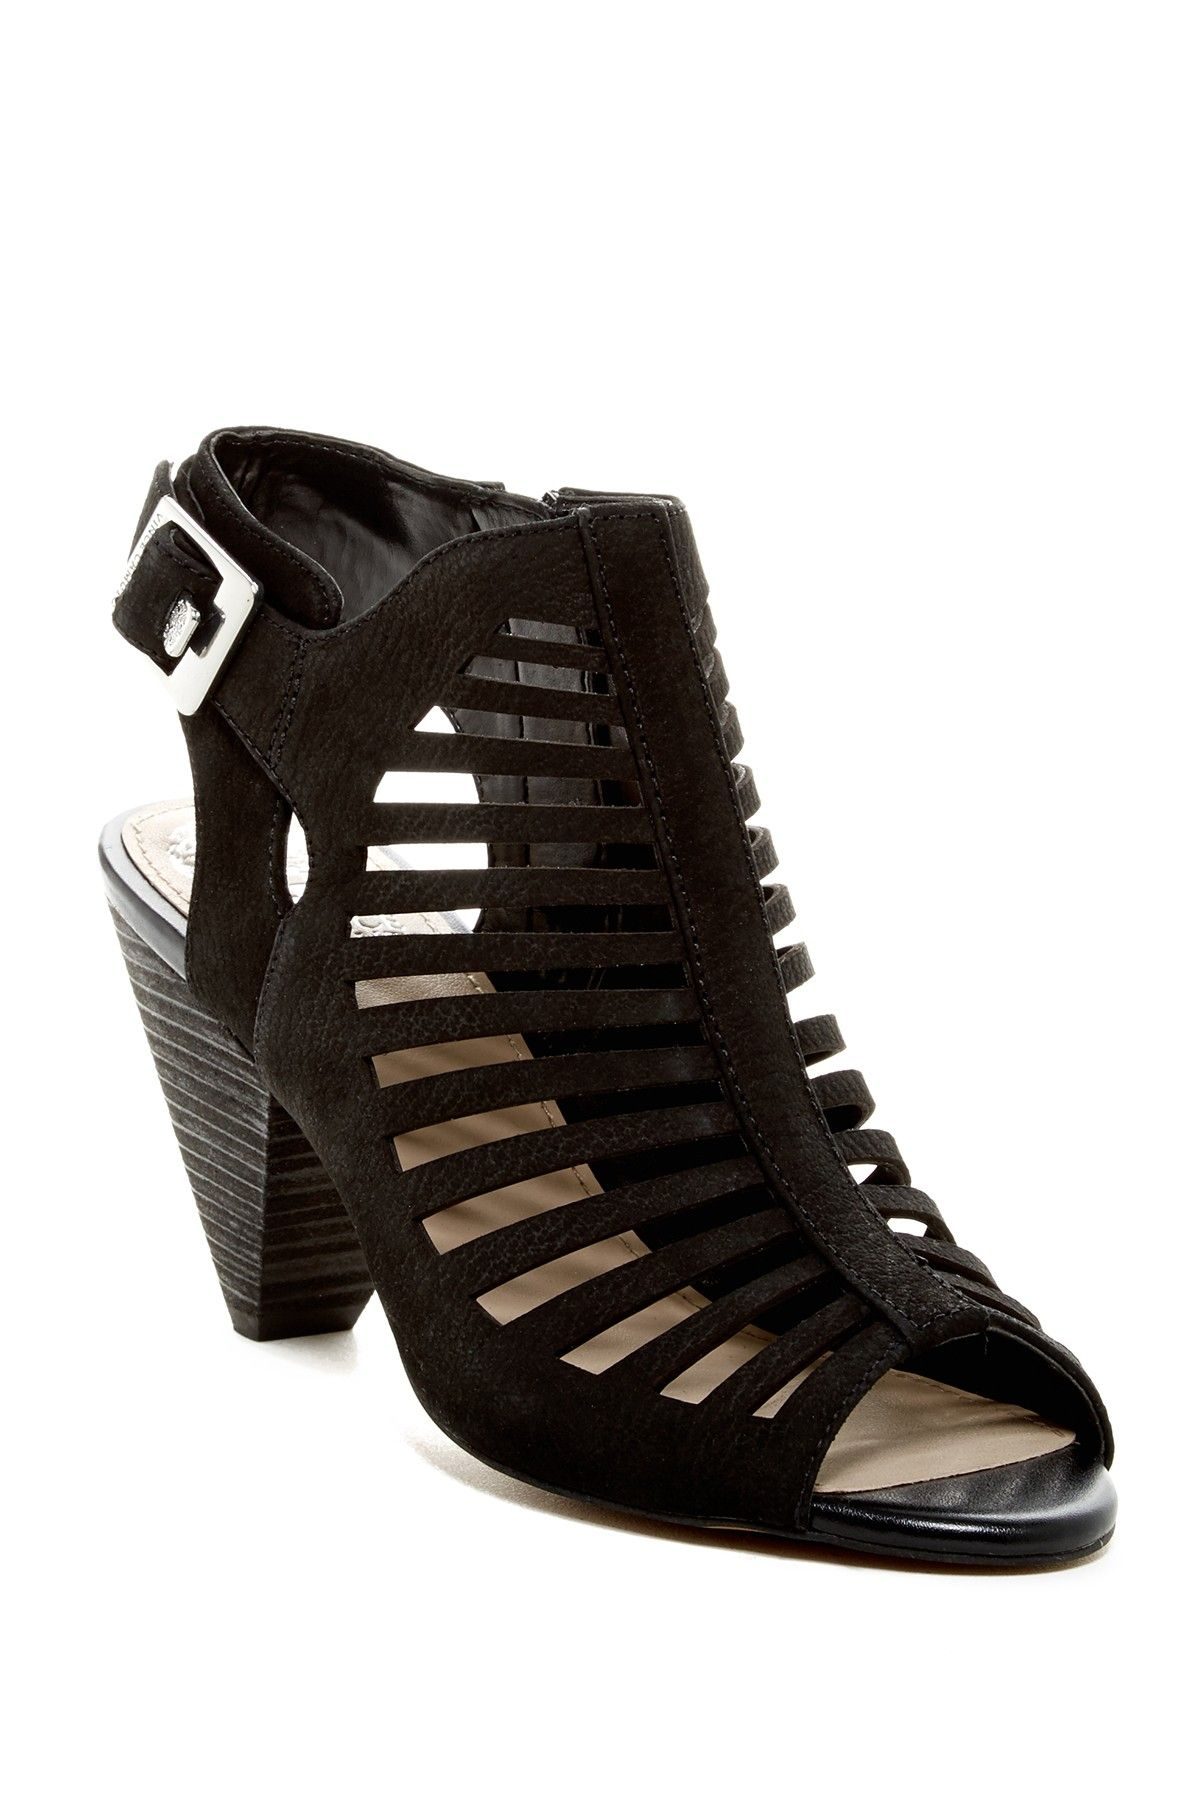 Vince Camuto | Eliana Caged Leather